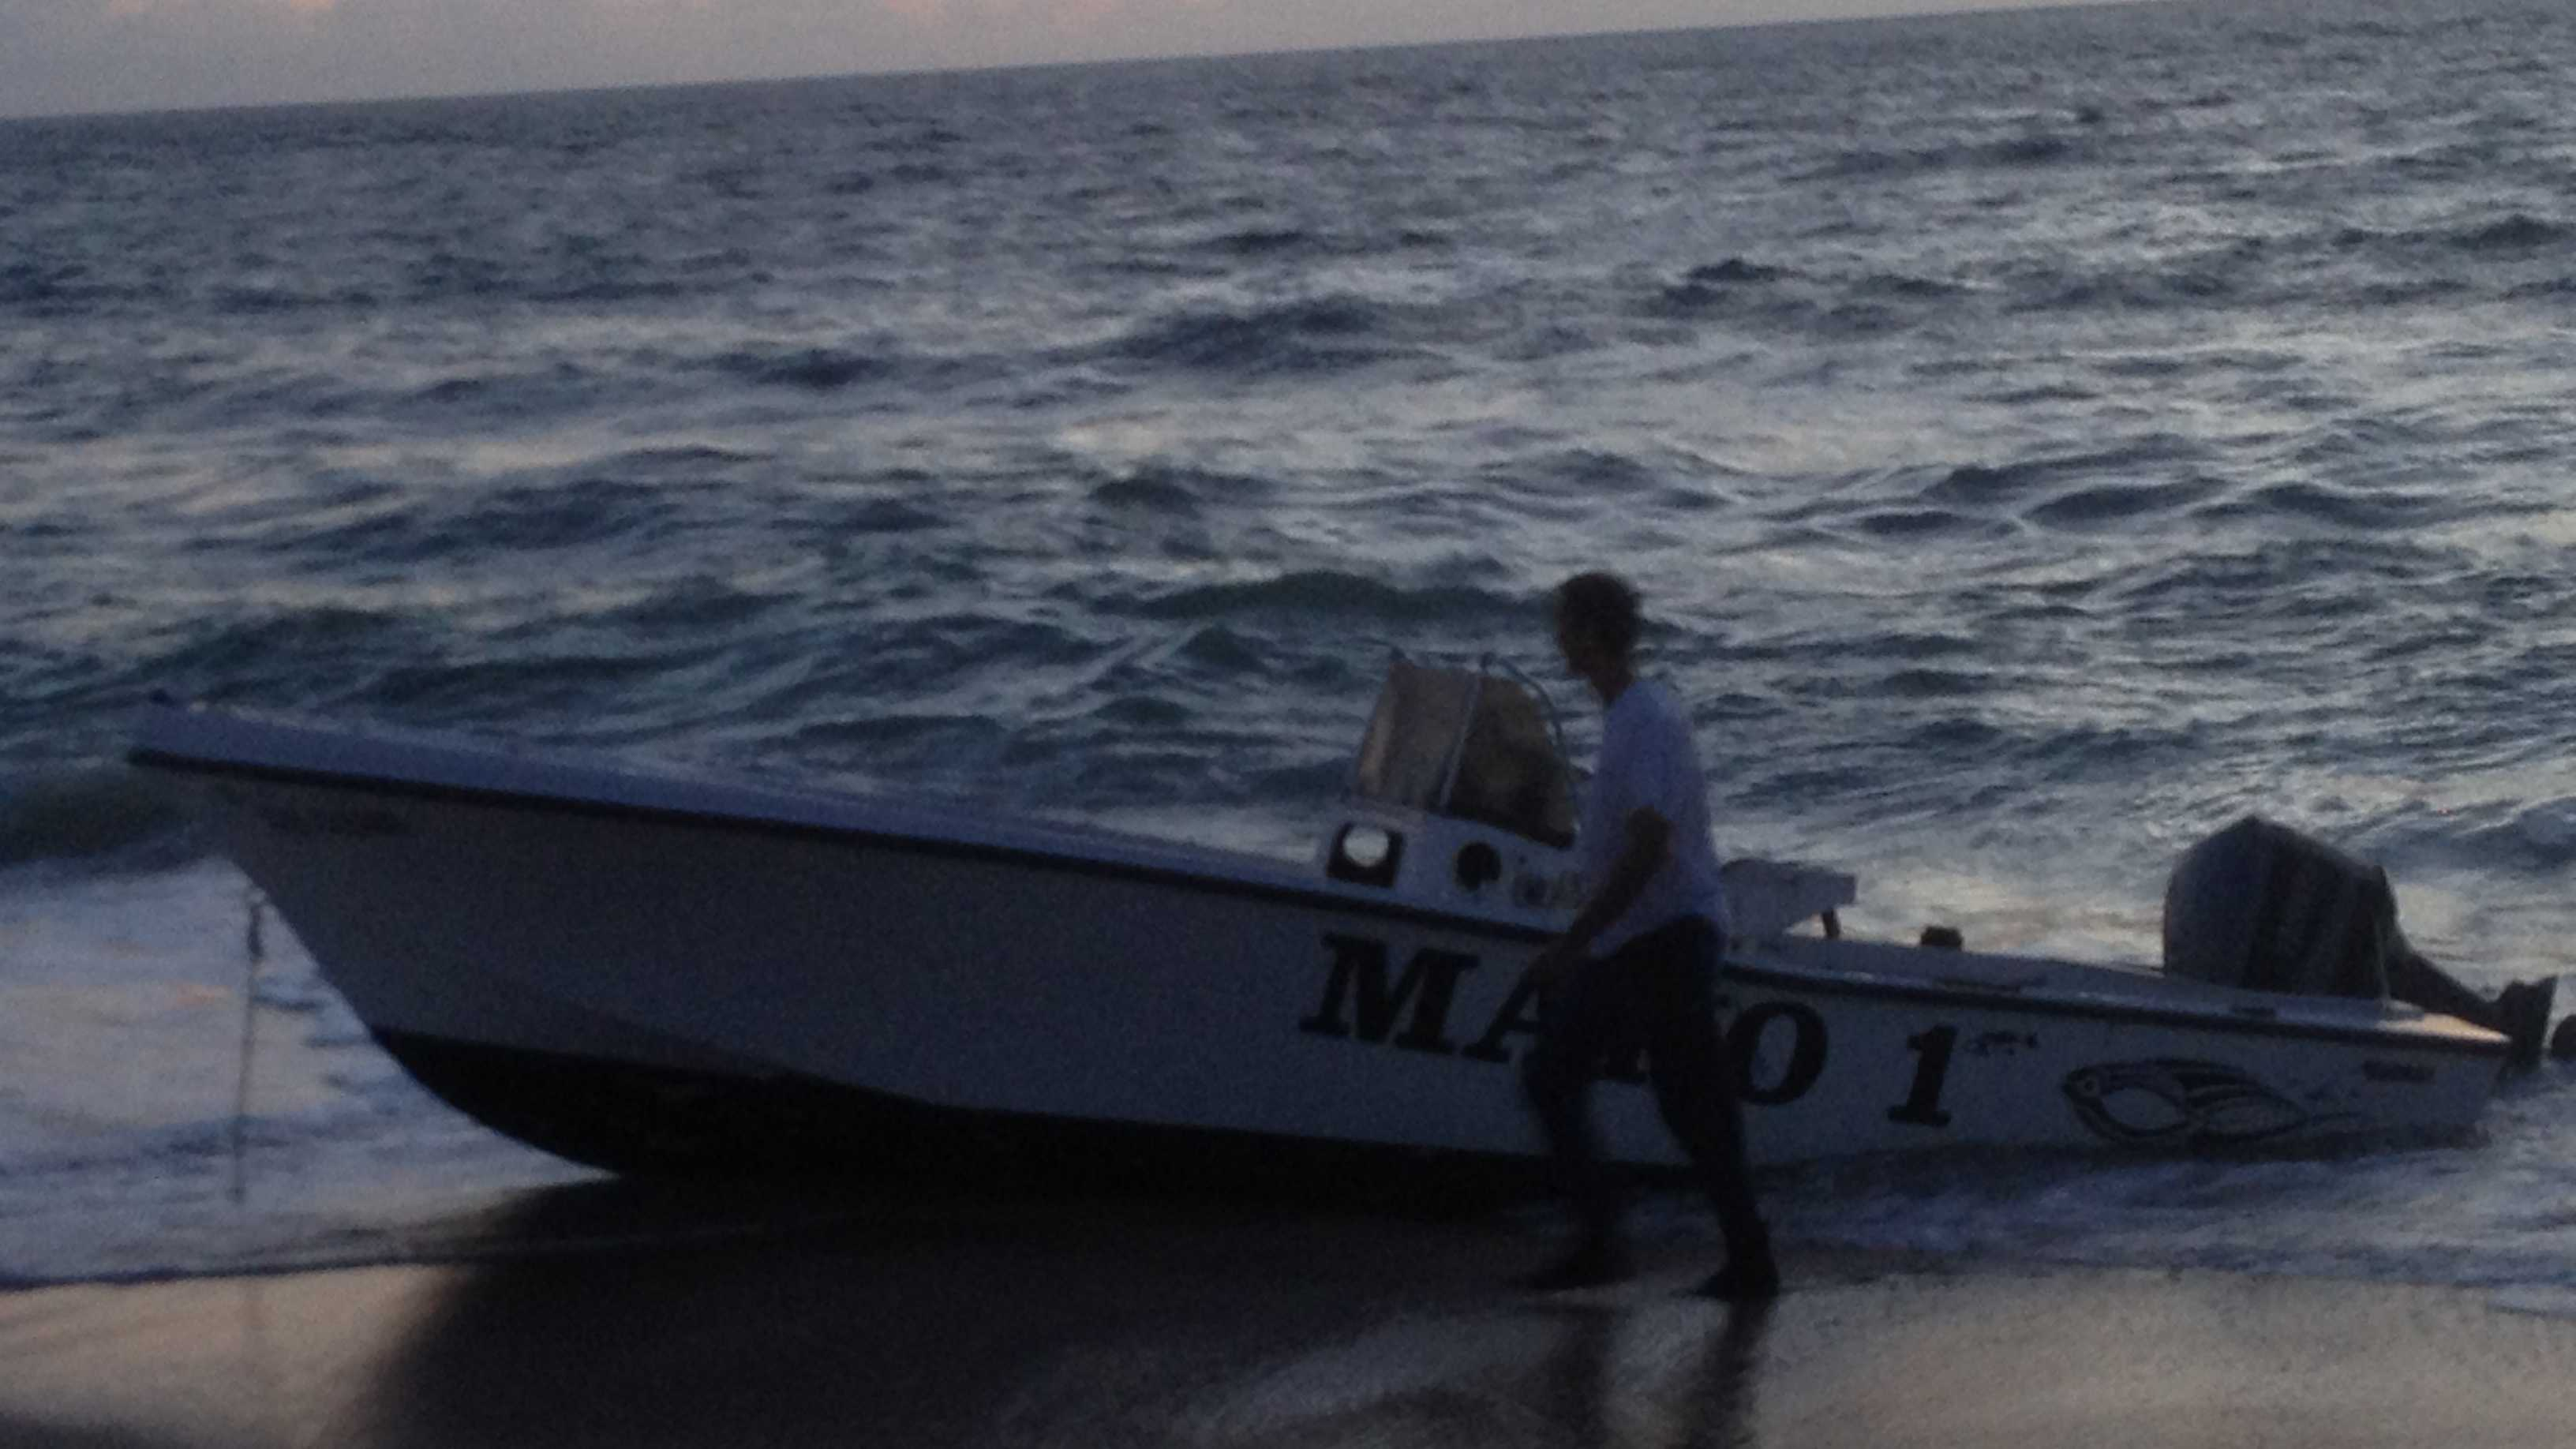 Here's the boat that agents say transported 10 undocumented migrants to Manalapan early Thursday morning.